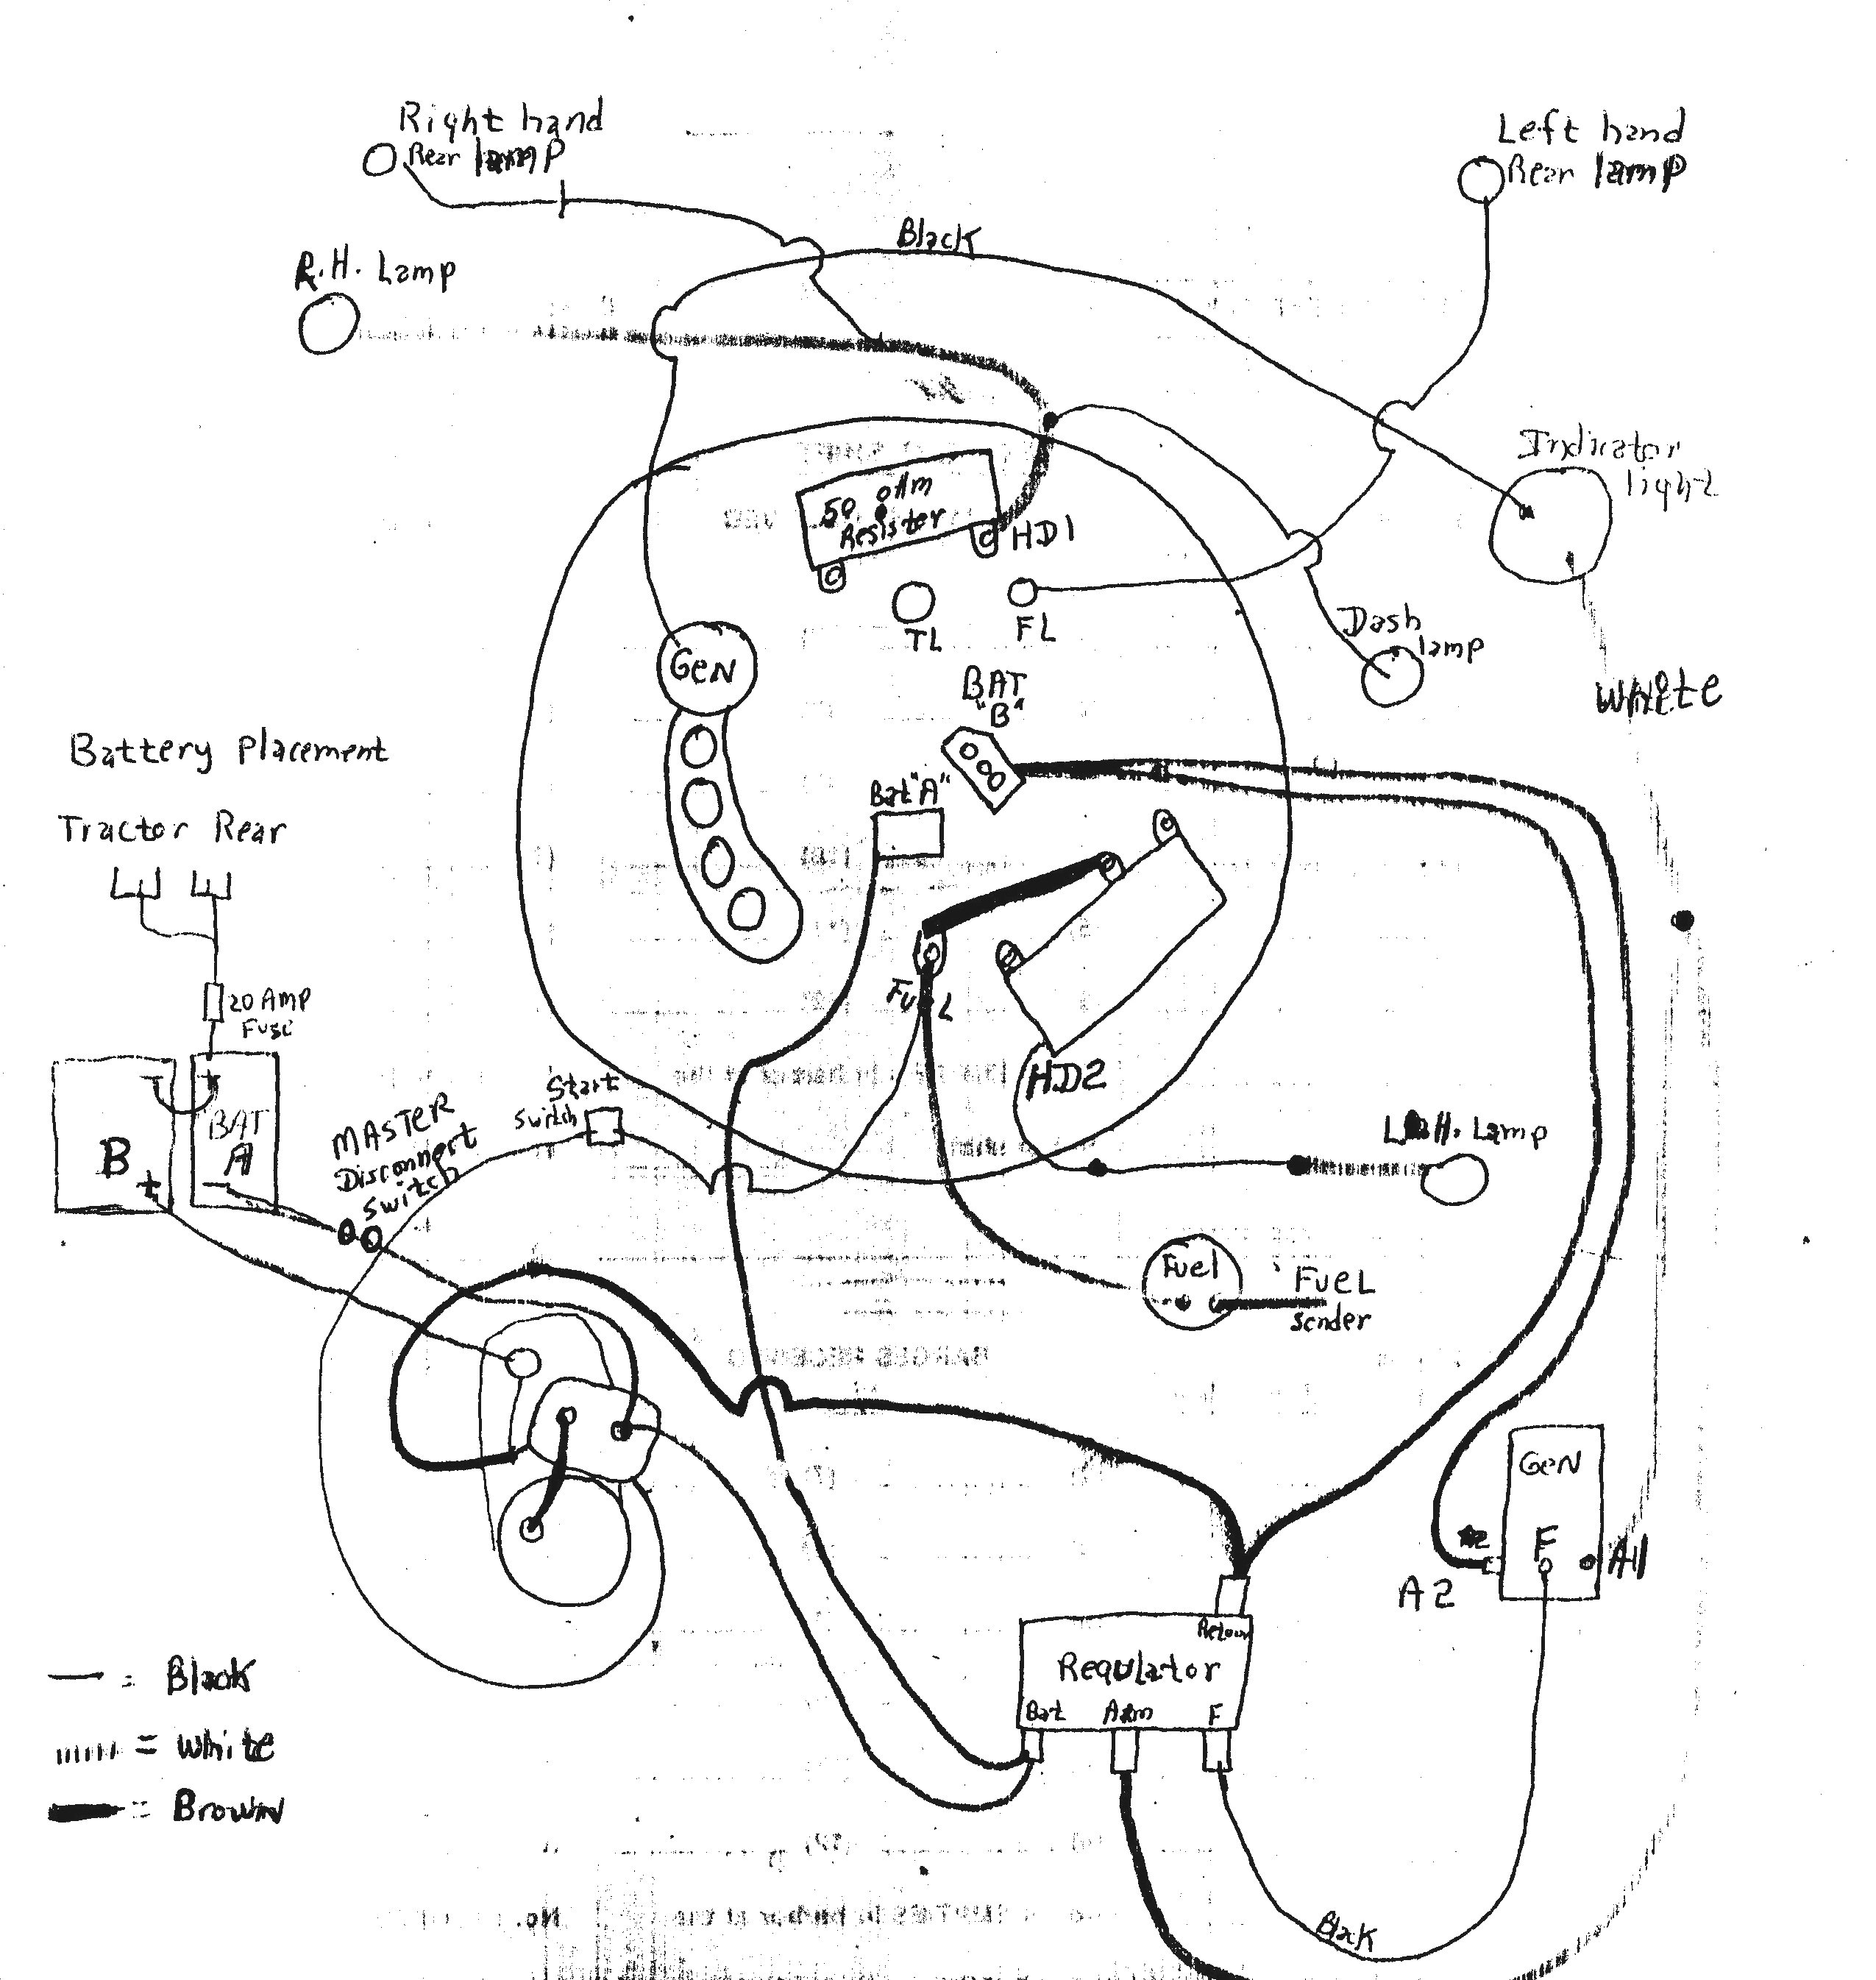 24volt_wiring_diagram jd a wiring diagram wiring diagram simonand john deere 4430 wiring diagram for ac at bayanpartner.co